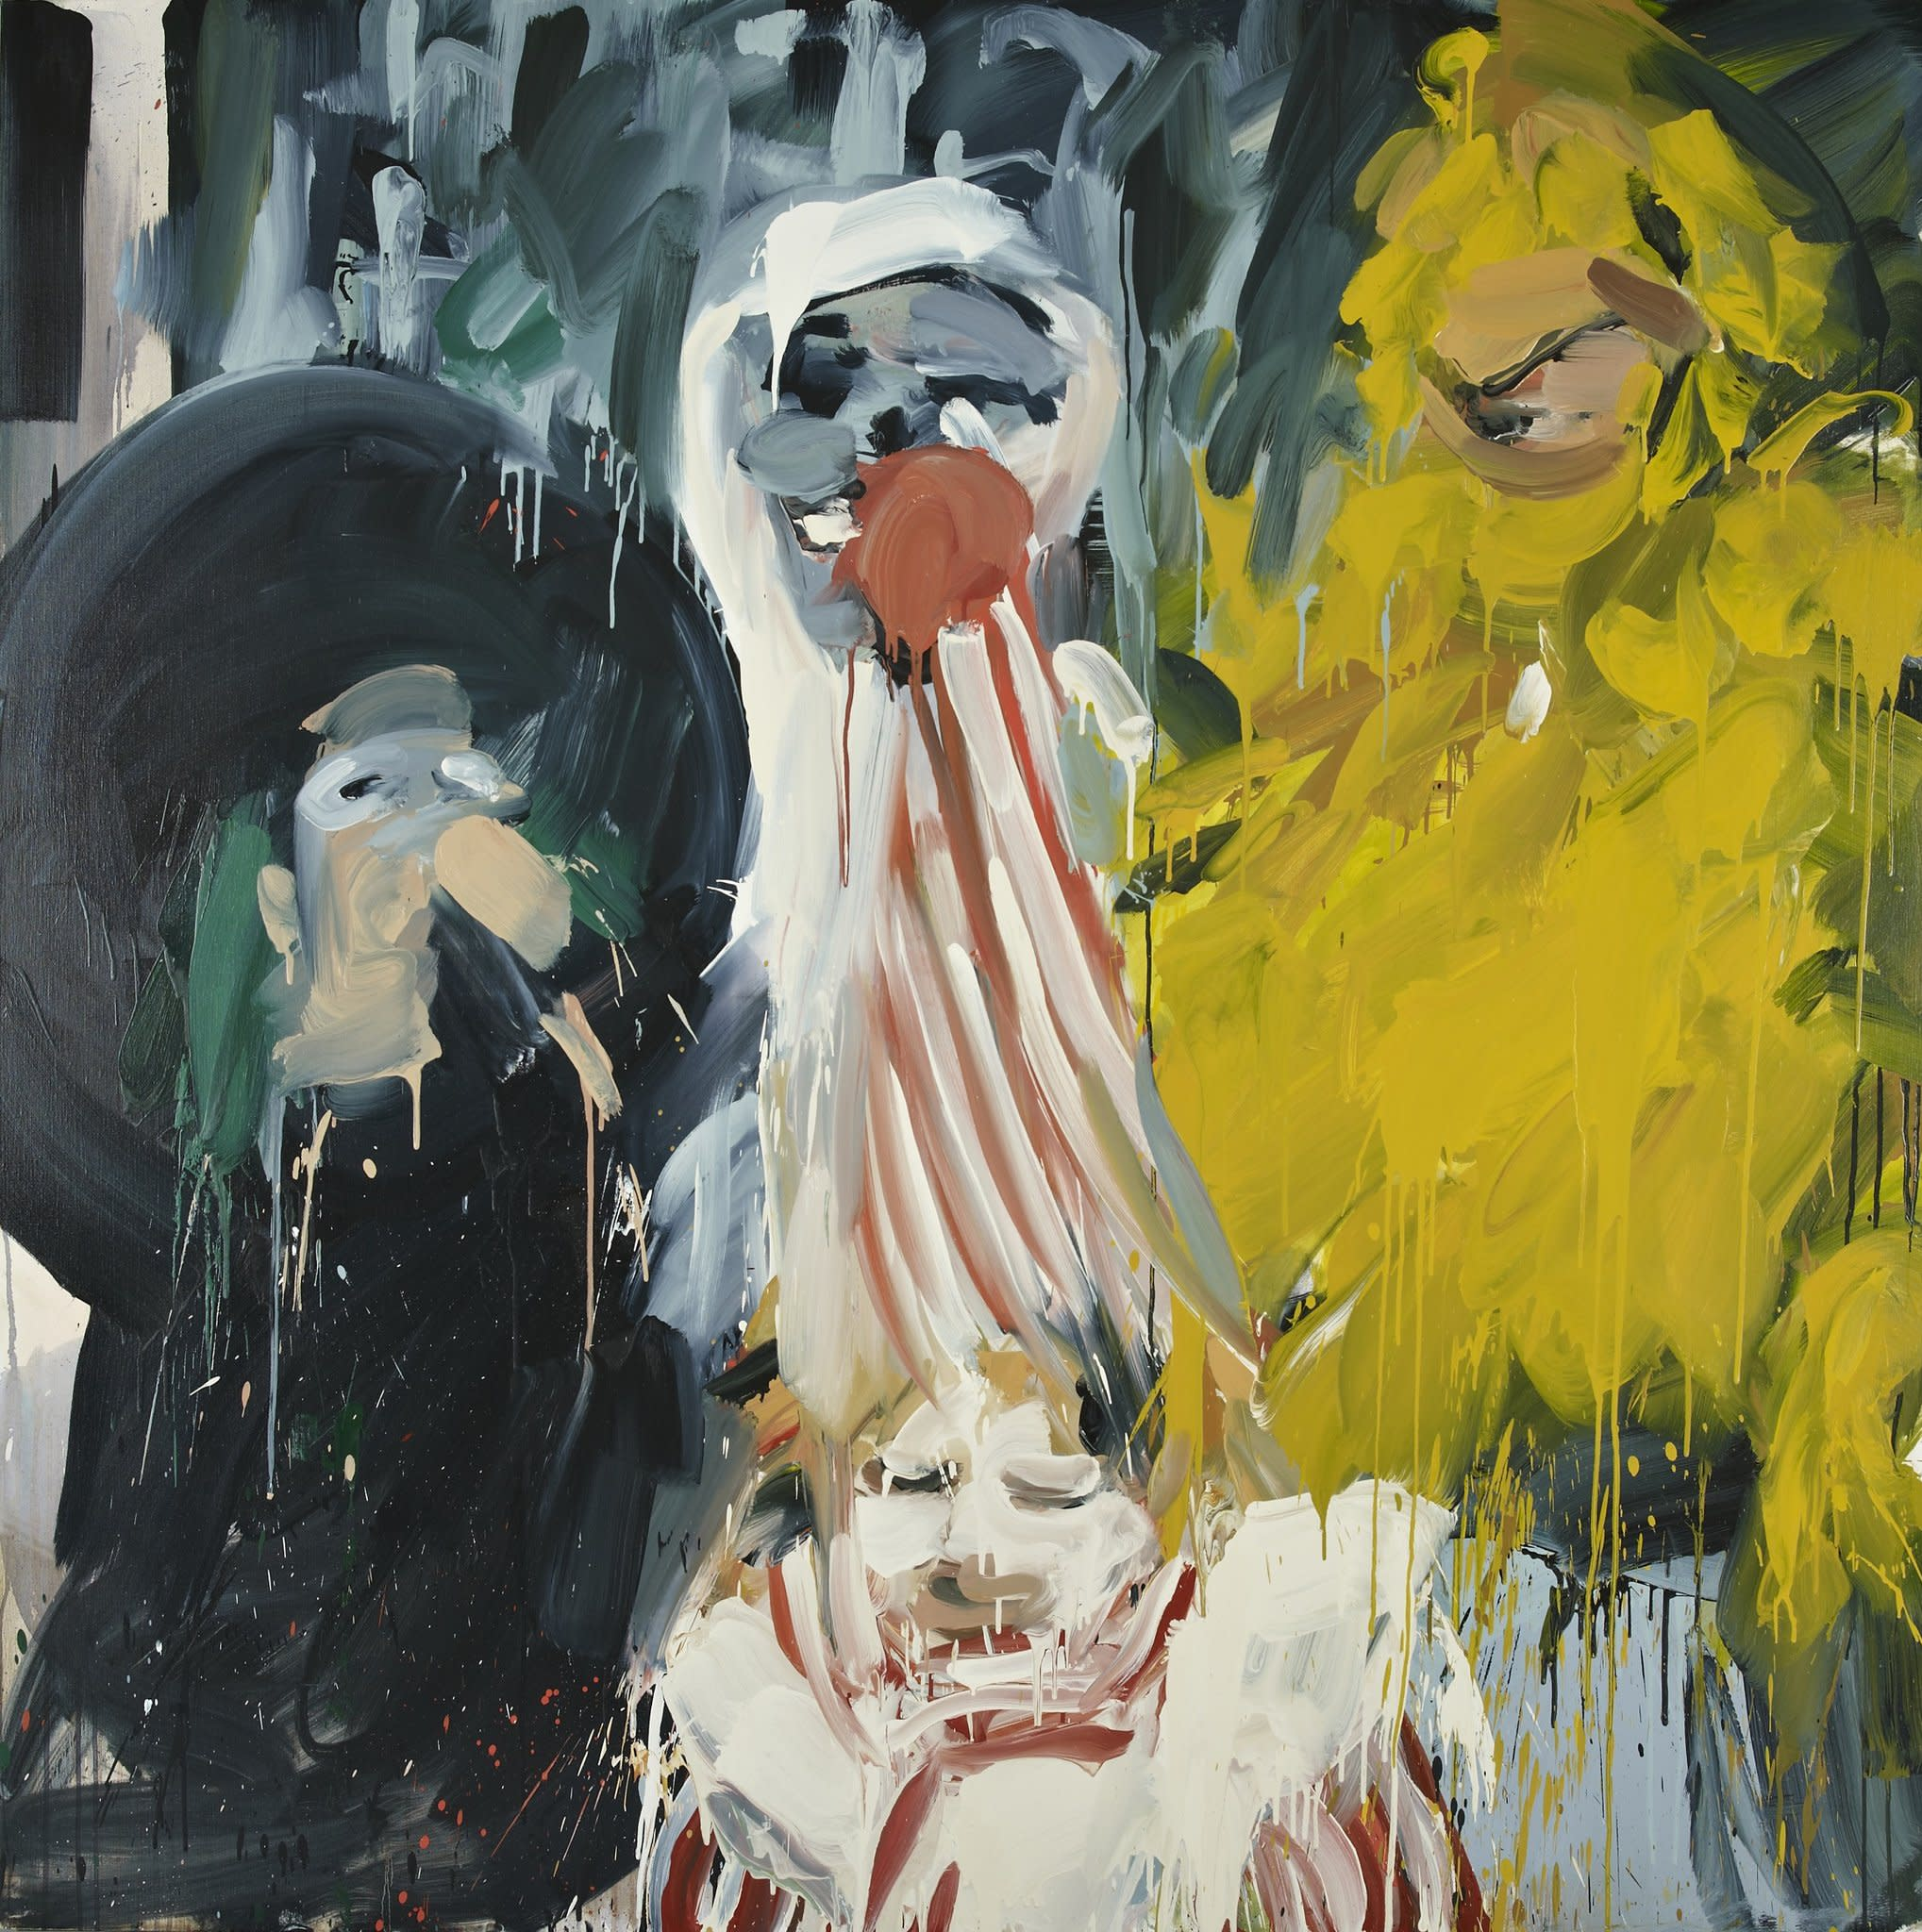 <span class=&#34;link fancybox-details-link&#34;><a href=&#34;/exhibitions/48/works/artworks8122/&#34;>View Detail Page</a></span><div class=&#34;artist&#34;><strong>Laura Lancaster</strong></div><div class=&#34;title&#34;>Untitled, 2013</div><div class=&#34;medium&#34;>Oil and Acrylic on Linen</div><div class=&#34;dimensions&#34;>200 x 200 cm<br>78 3/4 x 78 3/4 in</div>